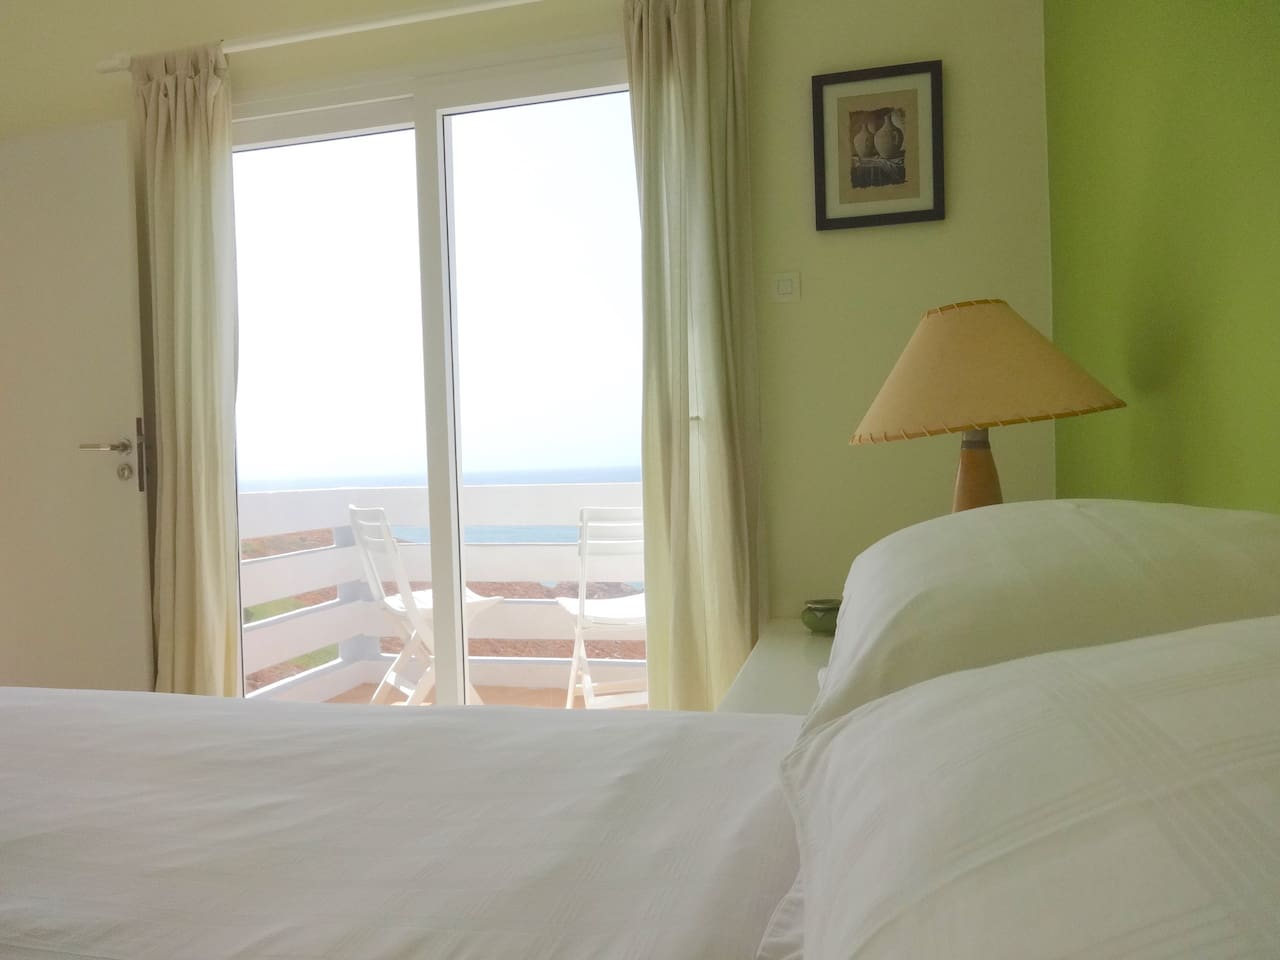 Your bedside view